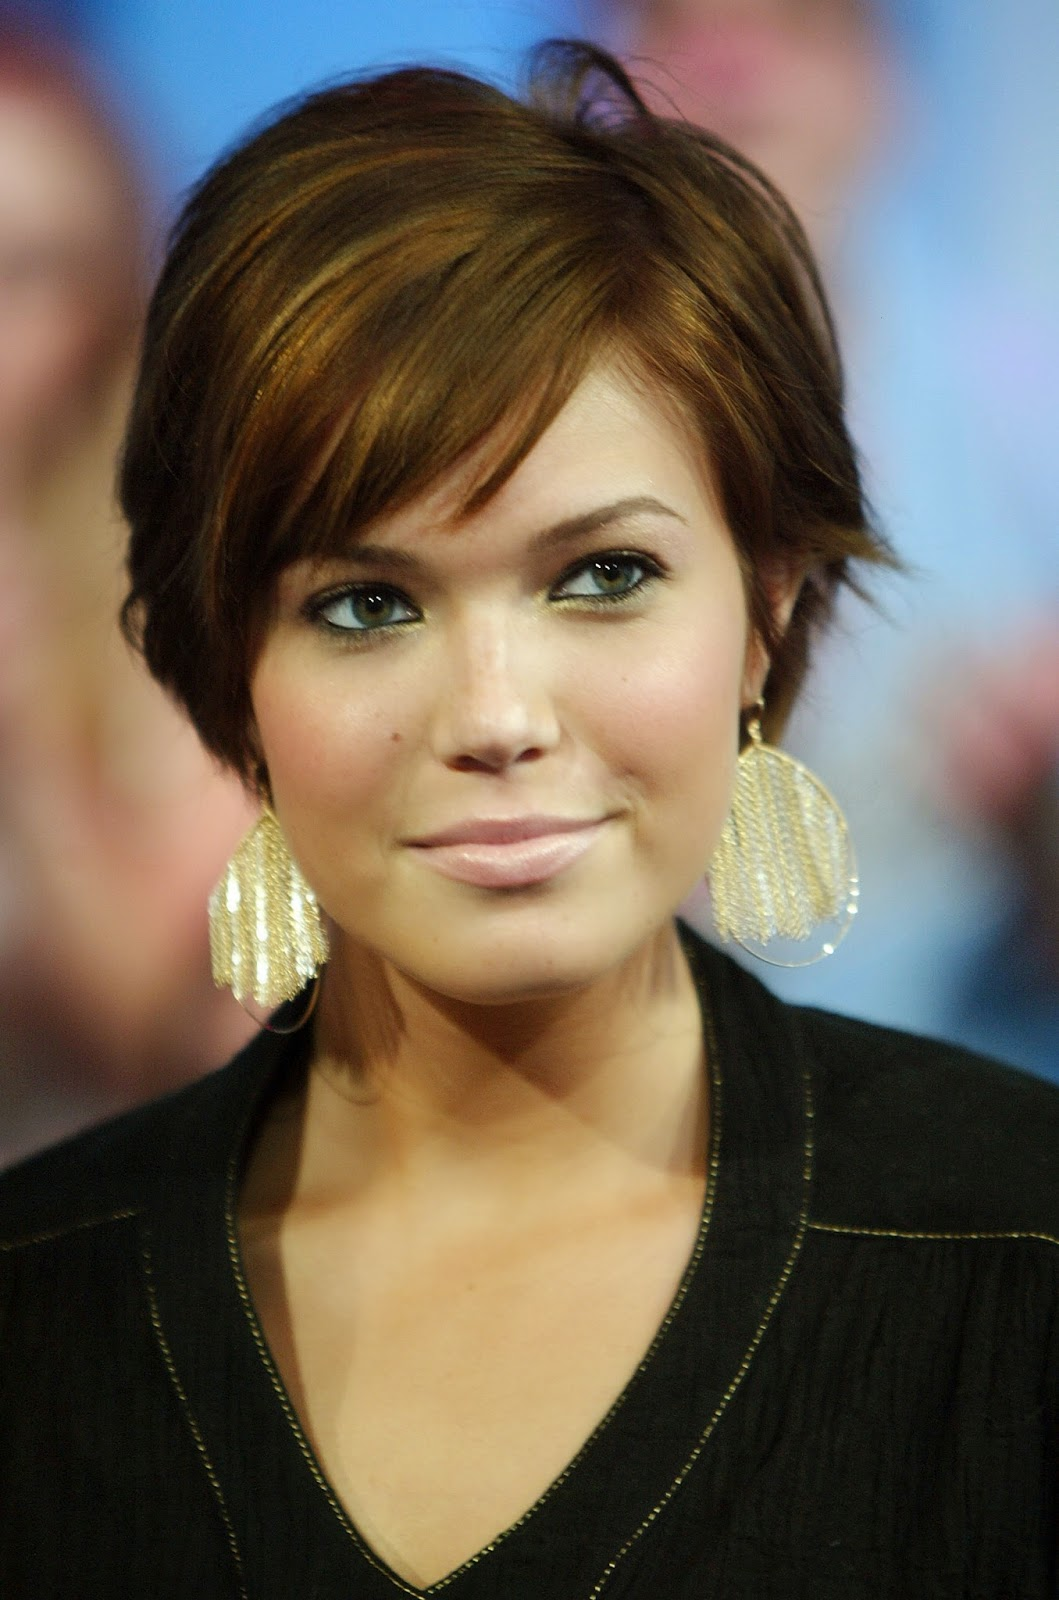 Astonishing Hairstyles Short Hairstyles For Women With Straight And Fine Hair Short Hairstyles For Black Women Fulllsitofus